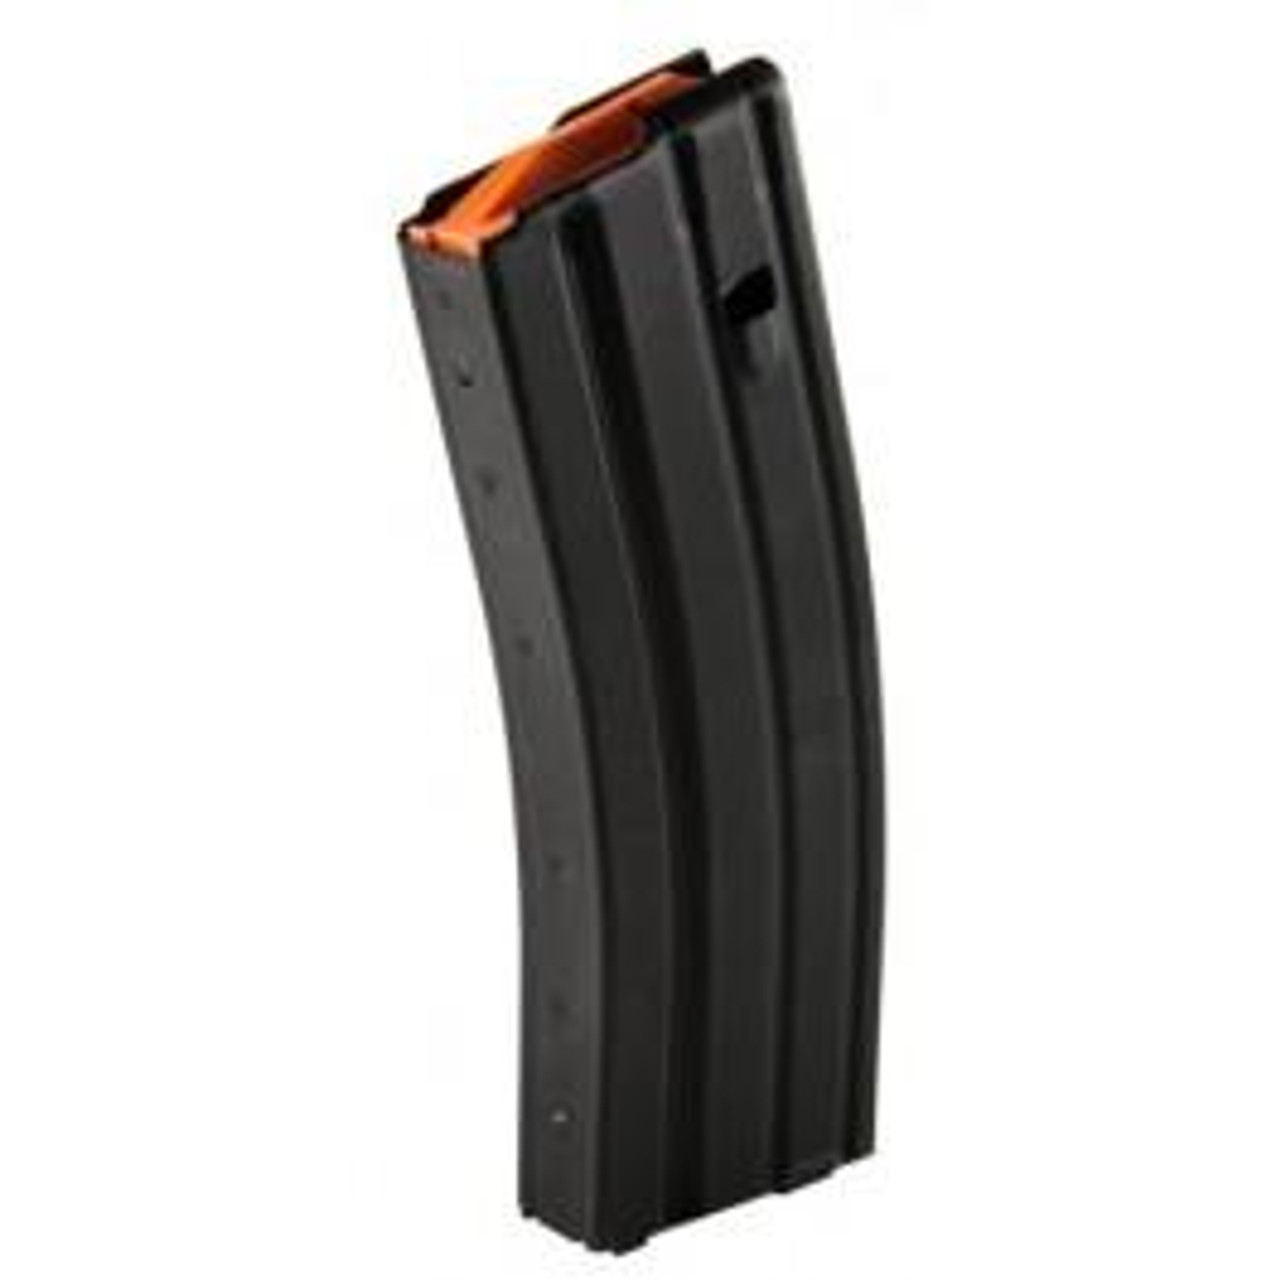 C-Products AR15 5/30 Round .223/5.56 Stainless Steel Magazine, CPDL05